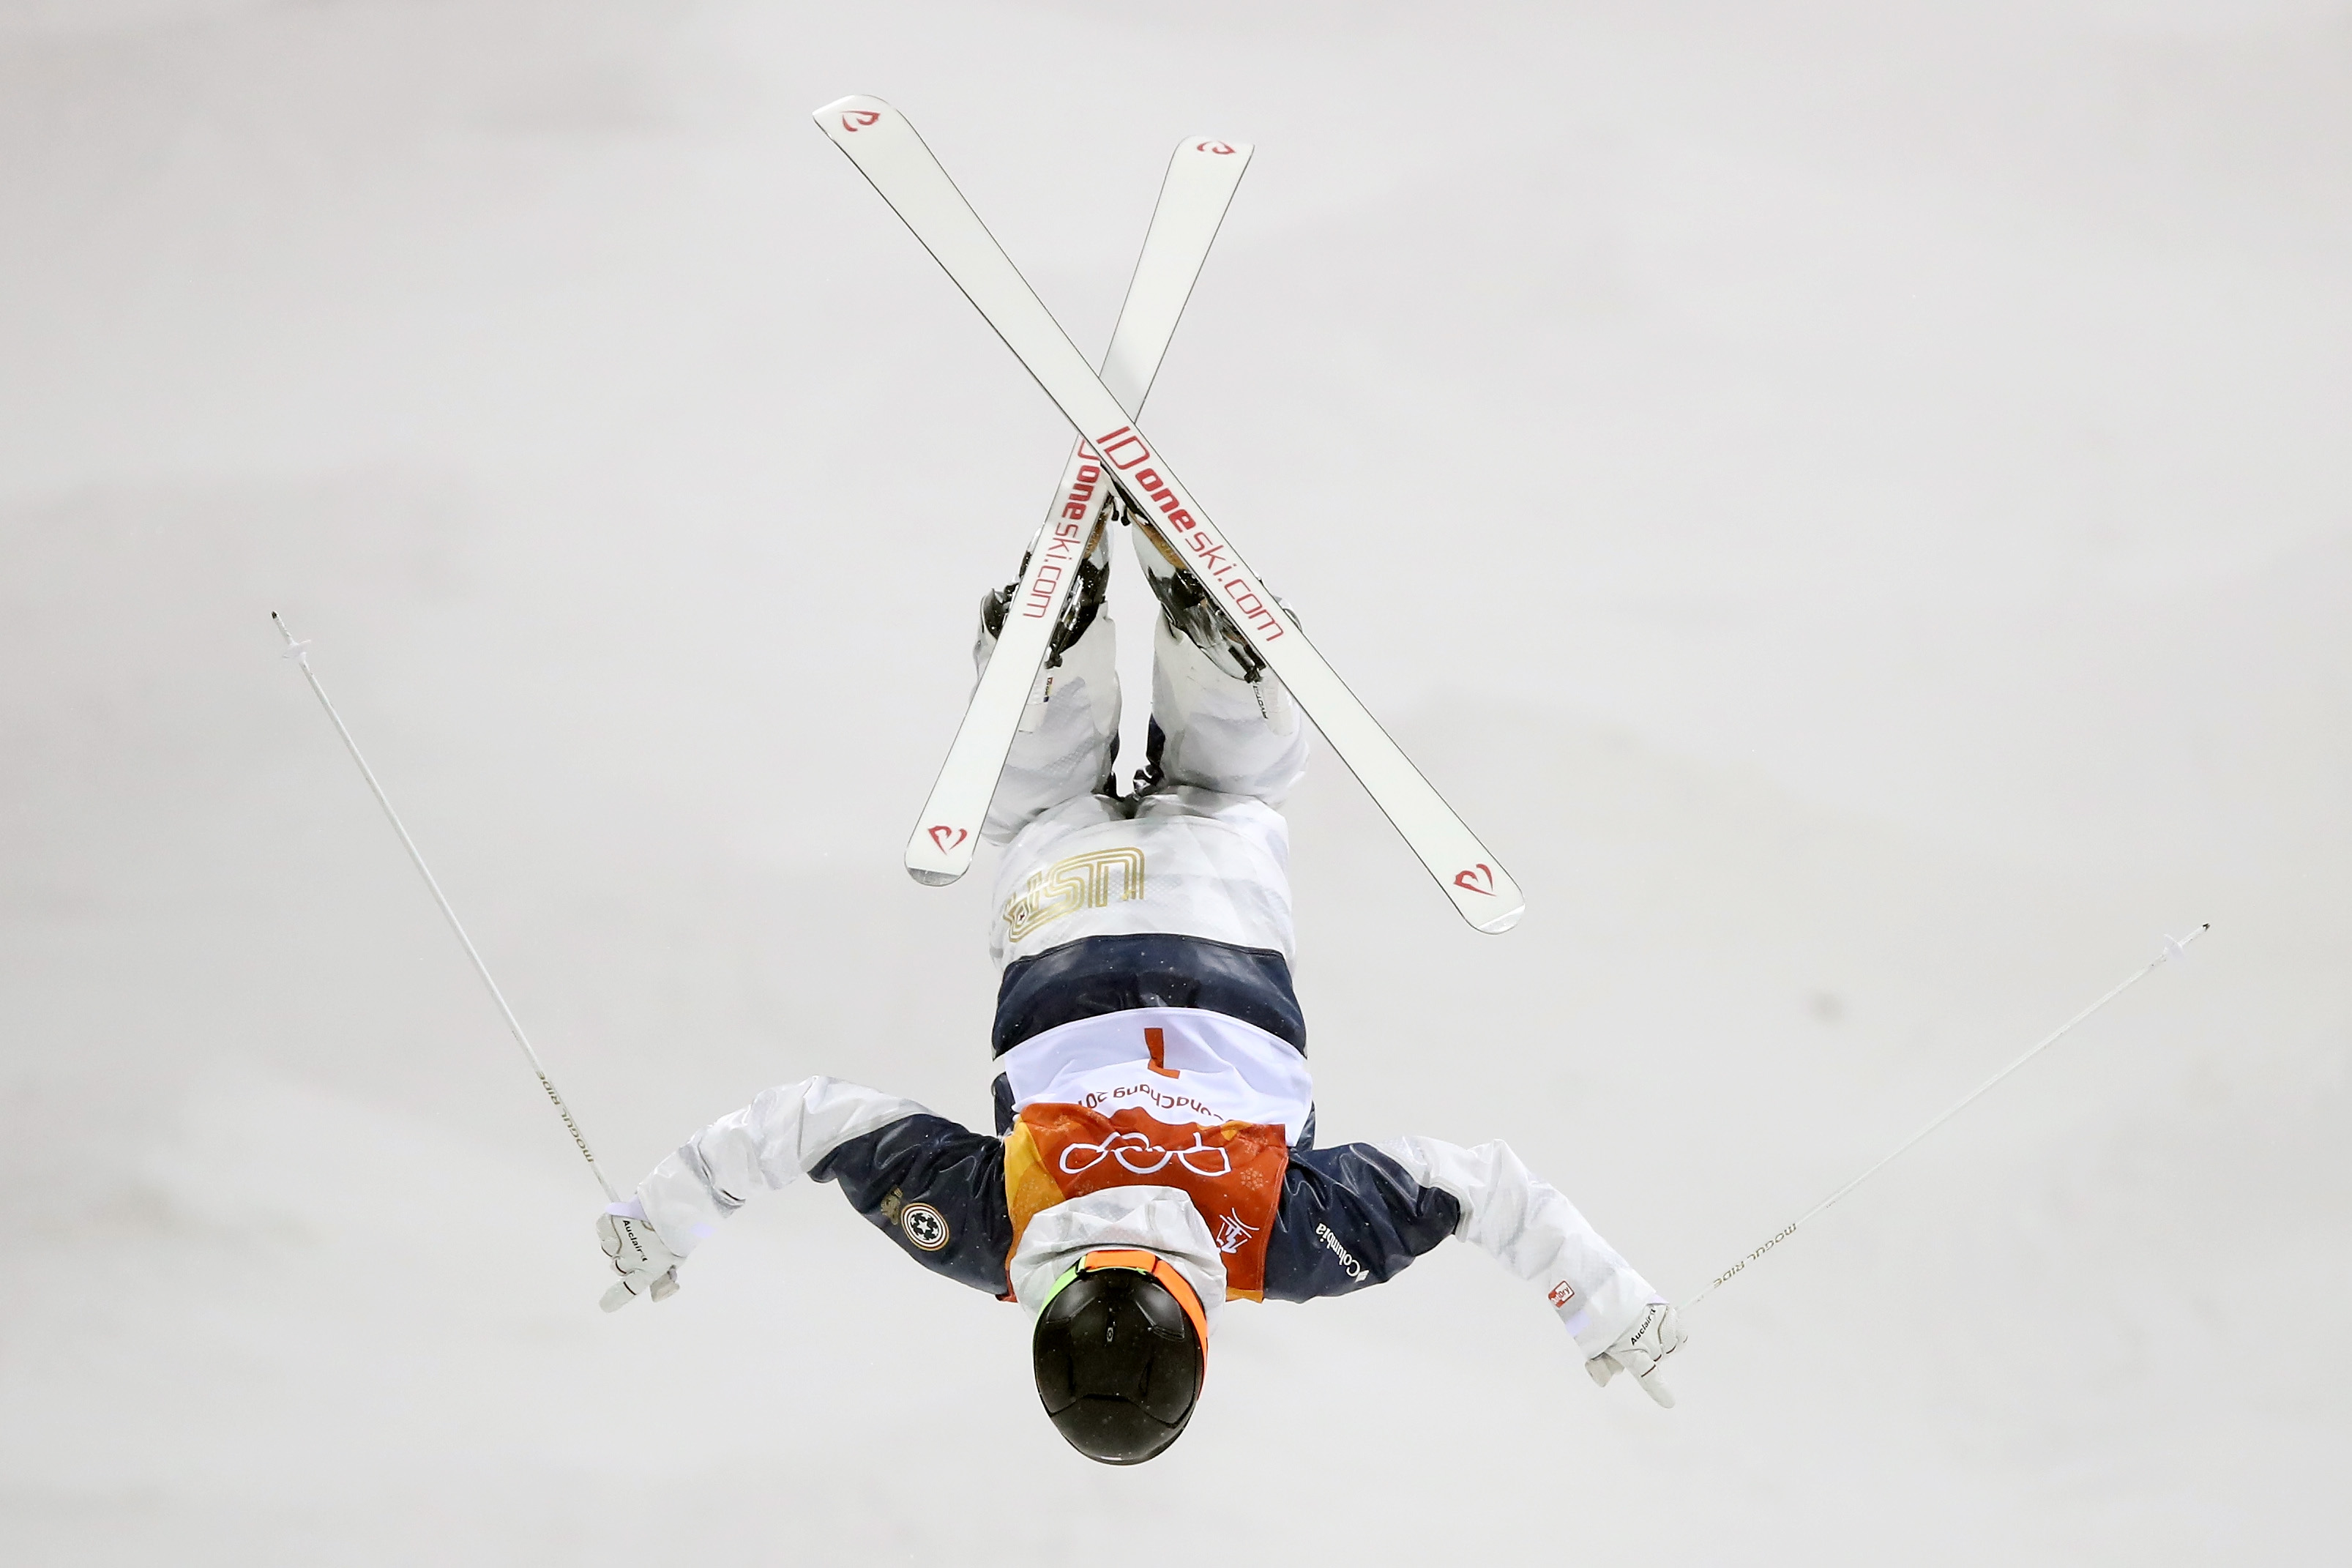 Freestyle Skiing - Winter Olympics Day 2